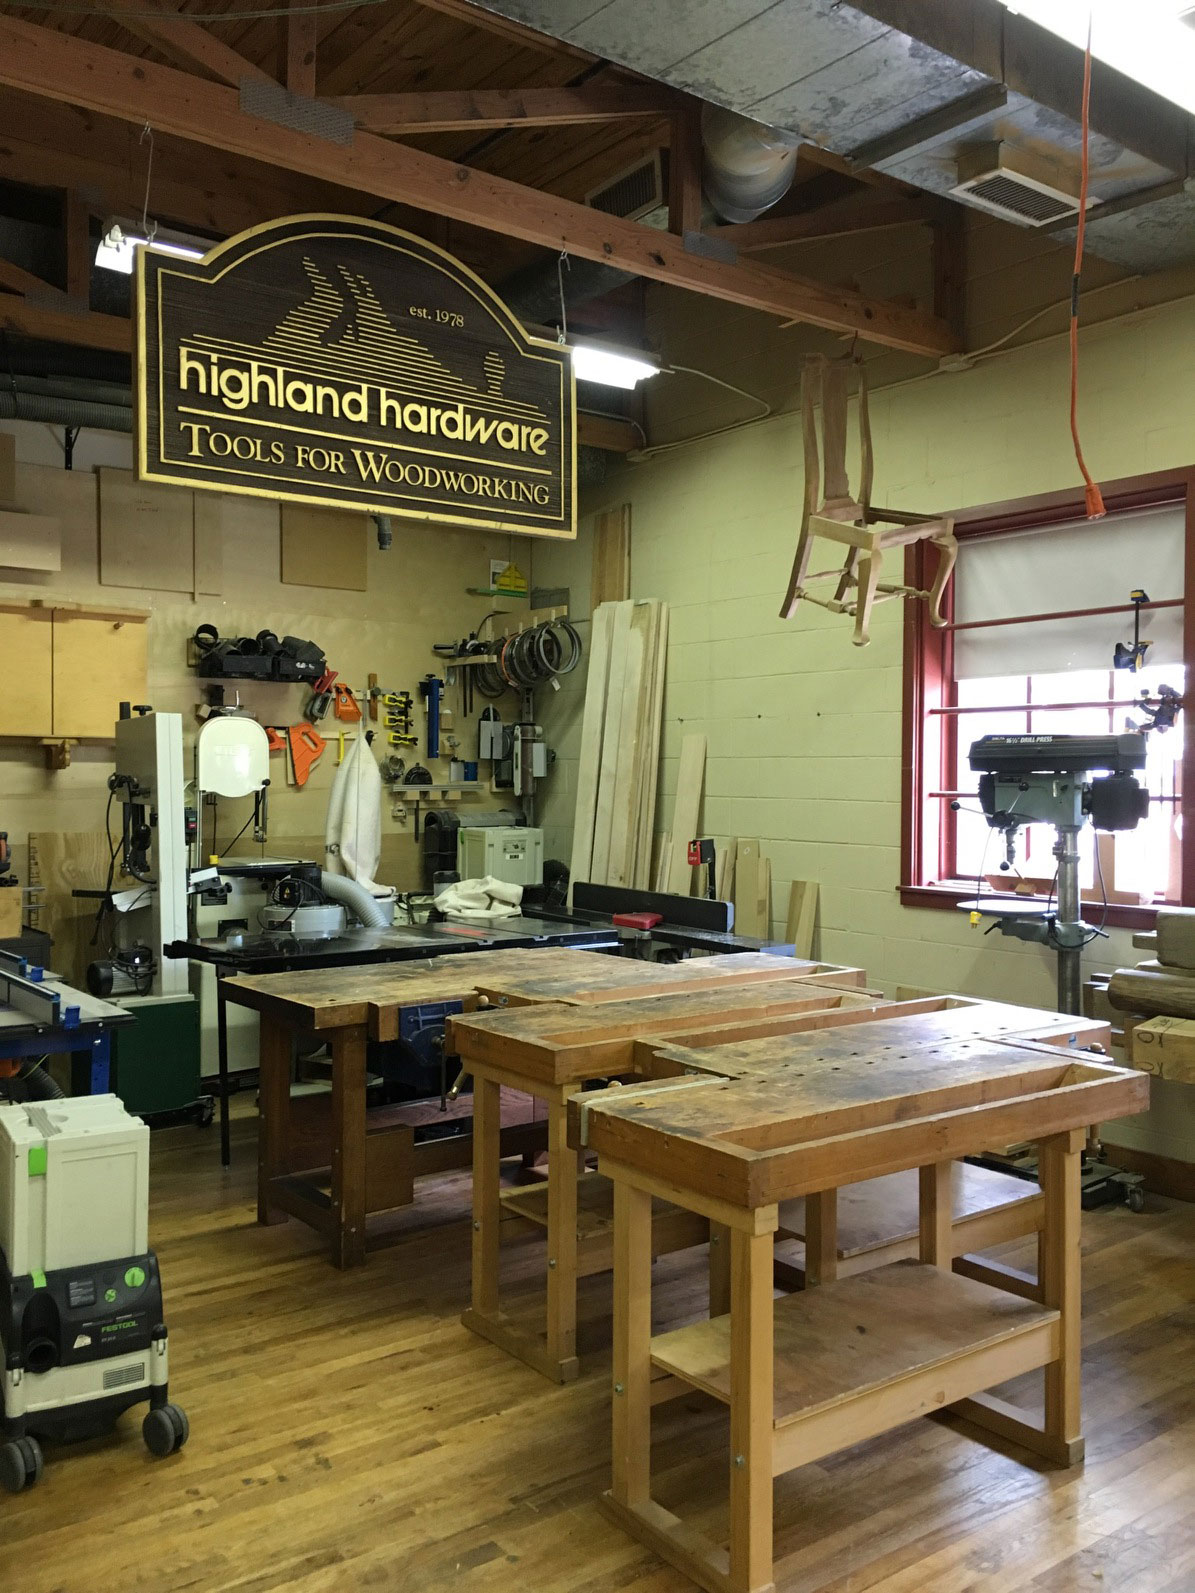 My Quick Visit To Highland Woodworking In Atlanta Jays Custom Creations